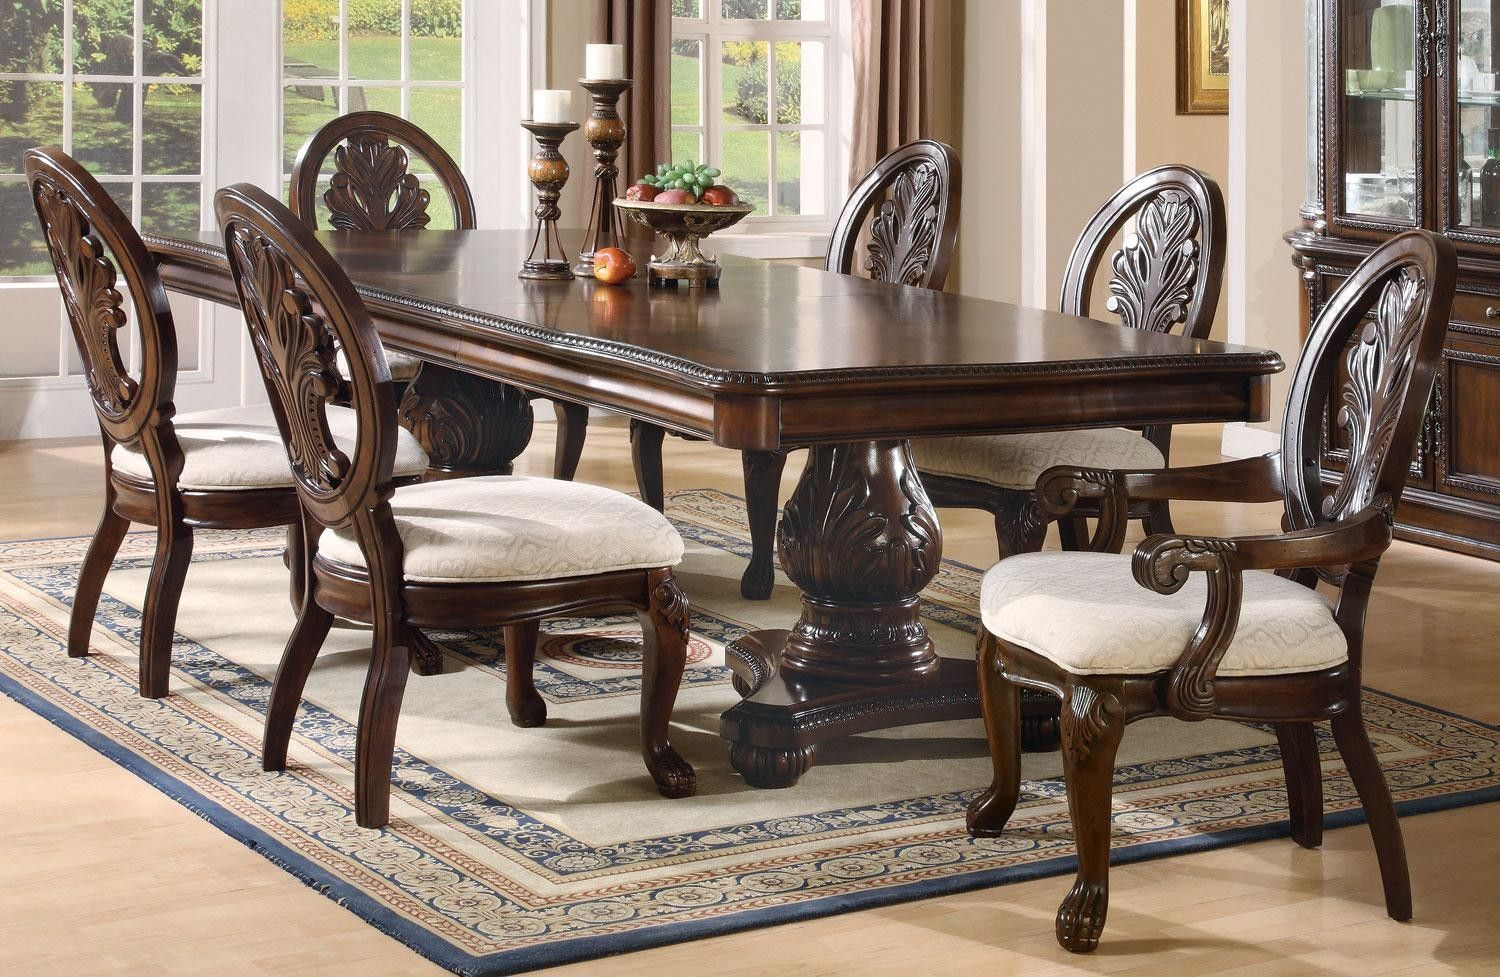 Master Dining Room Tablecoaster Furniture Is A Stunning Dining Fascinating Coaster Dining Room Furniture Design Inspiration